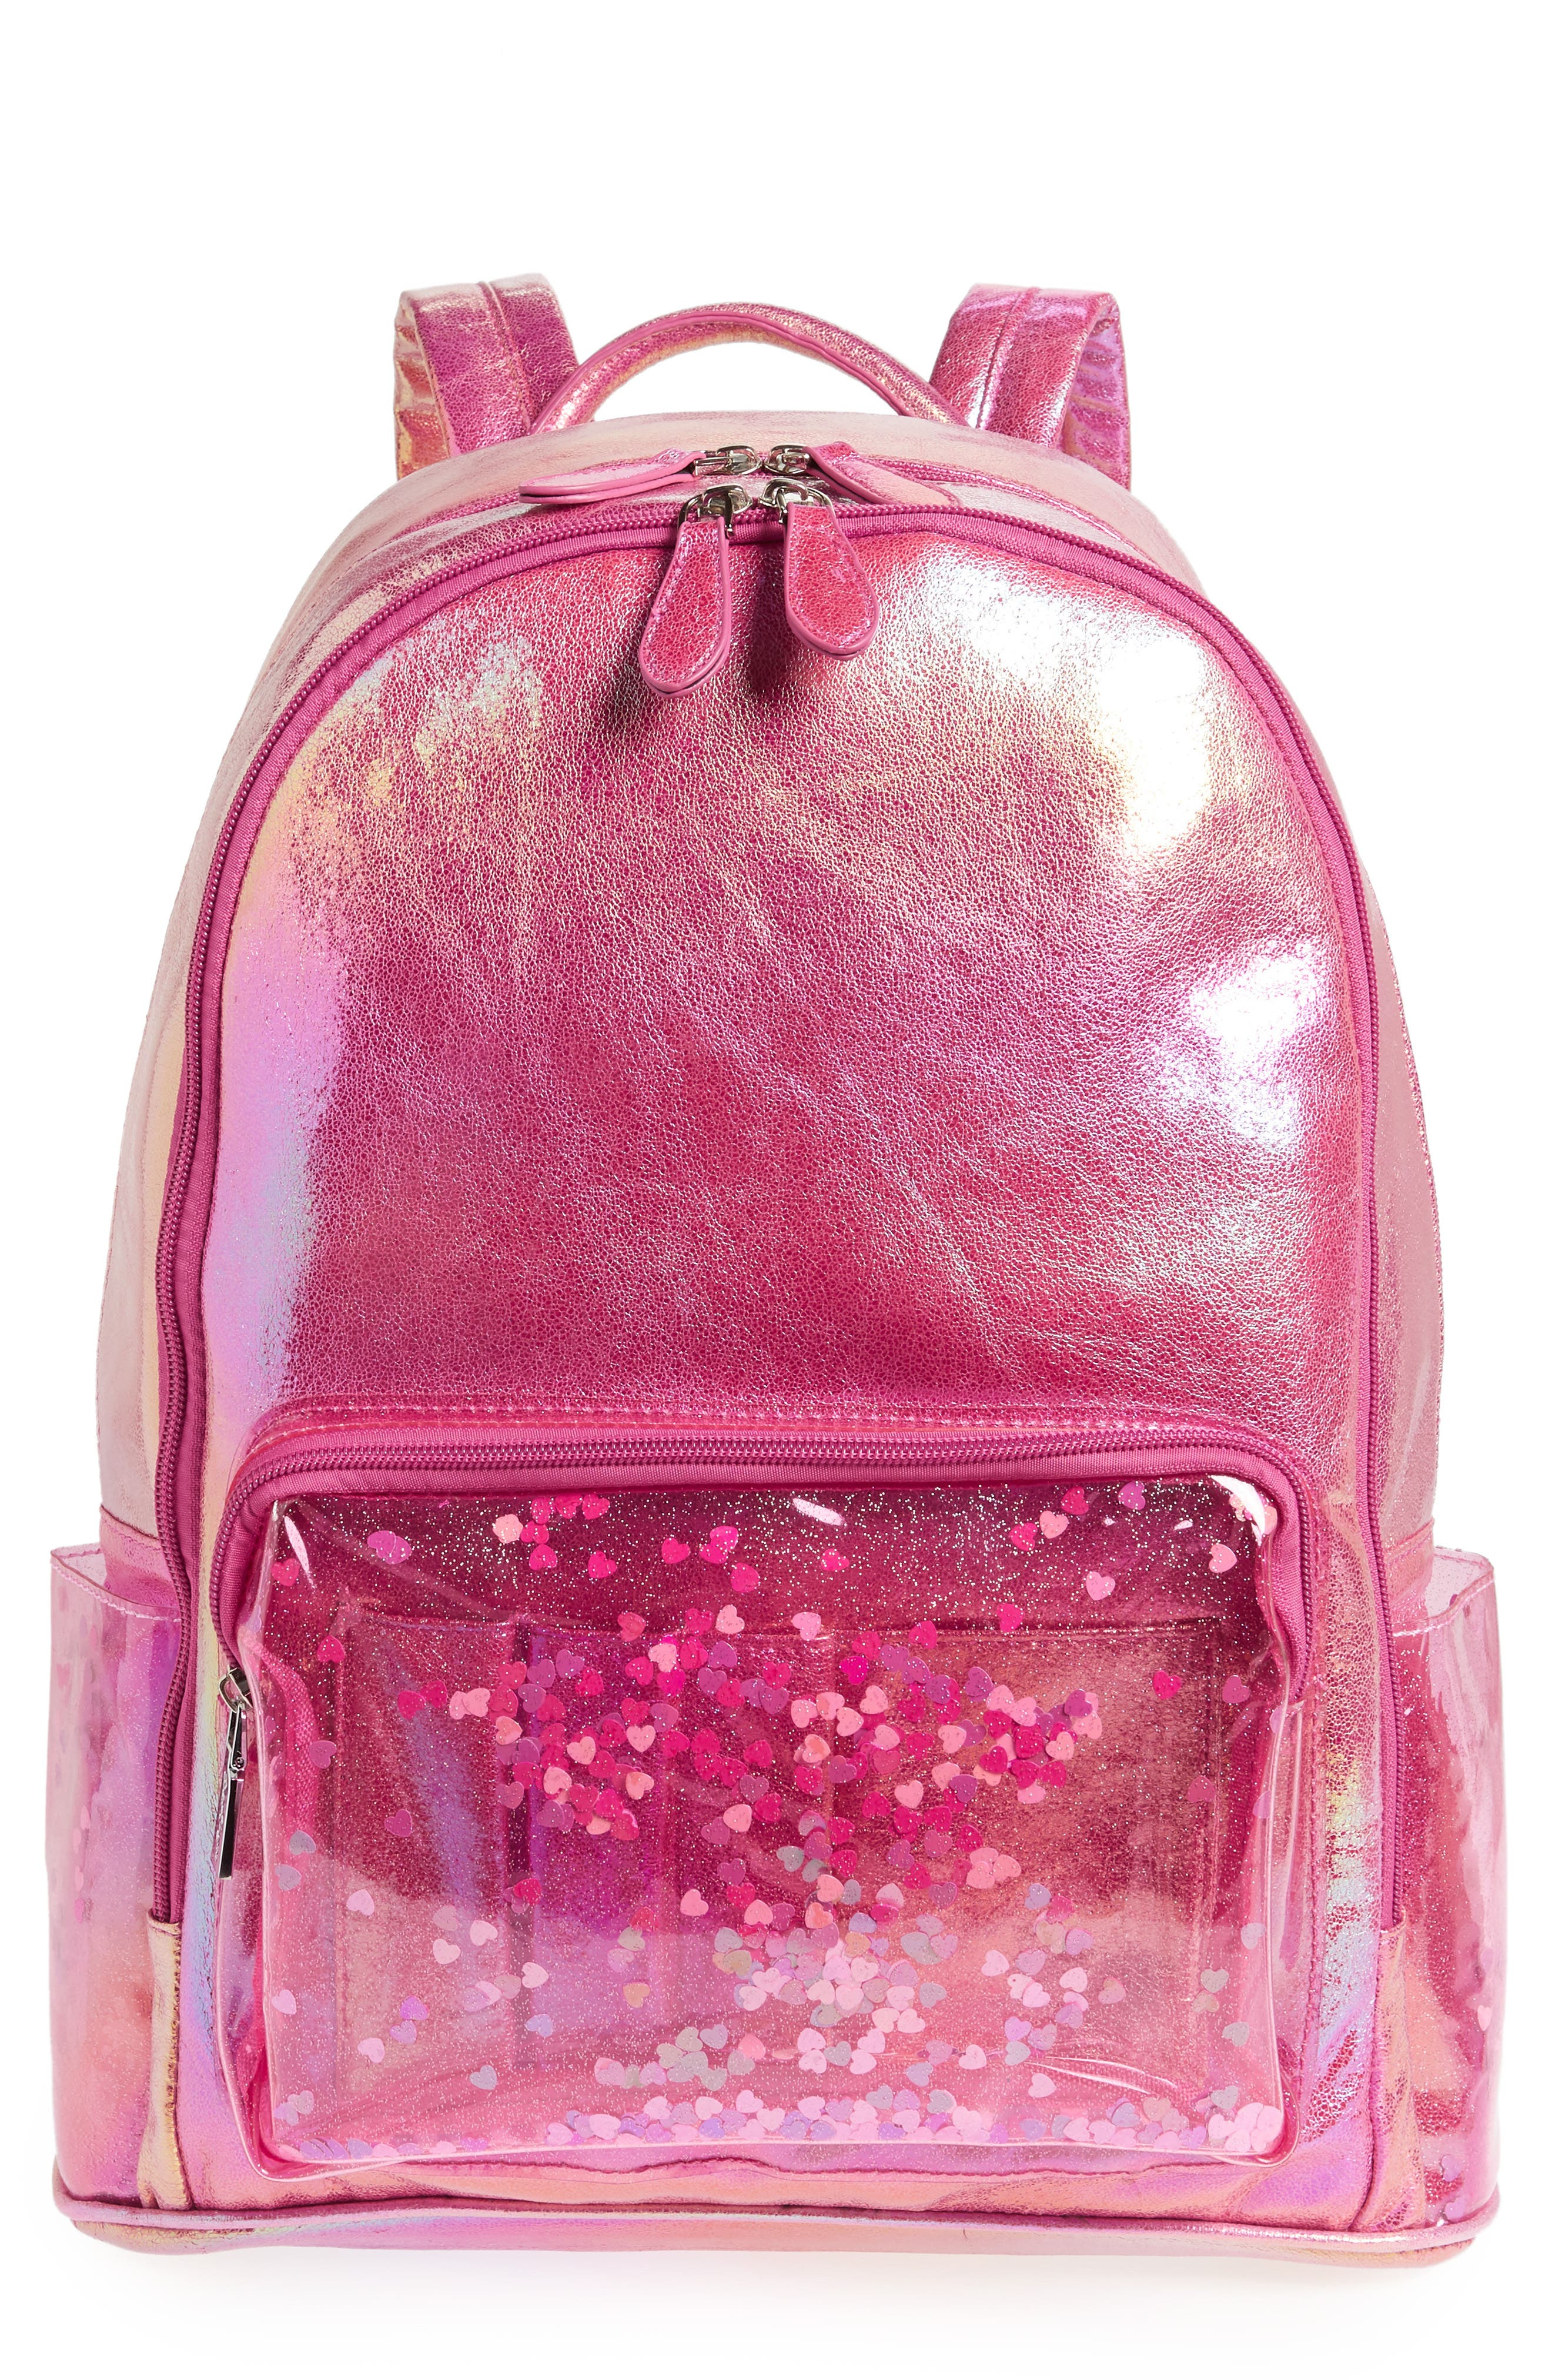 Heart Confetti Holographic Backpack,                         Main,                         color, Pink